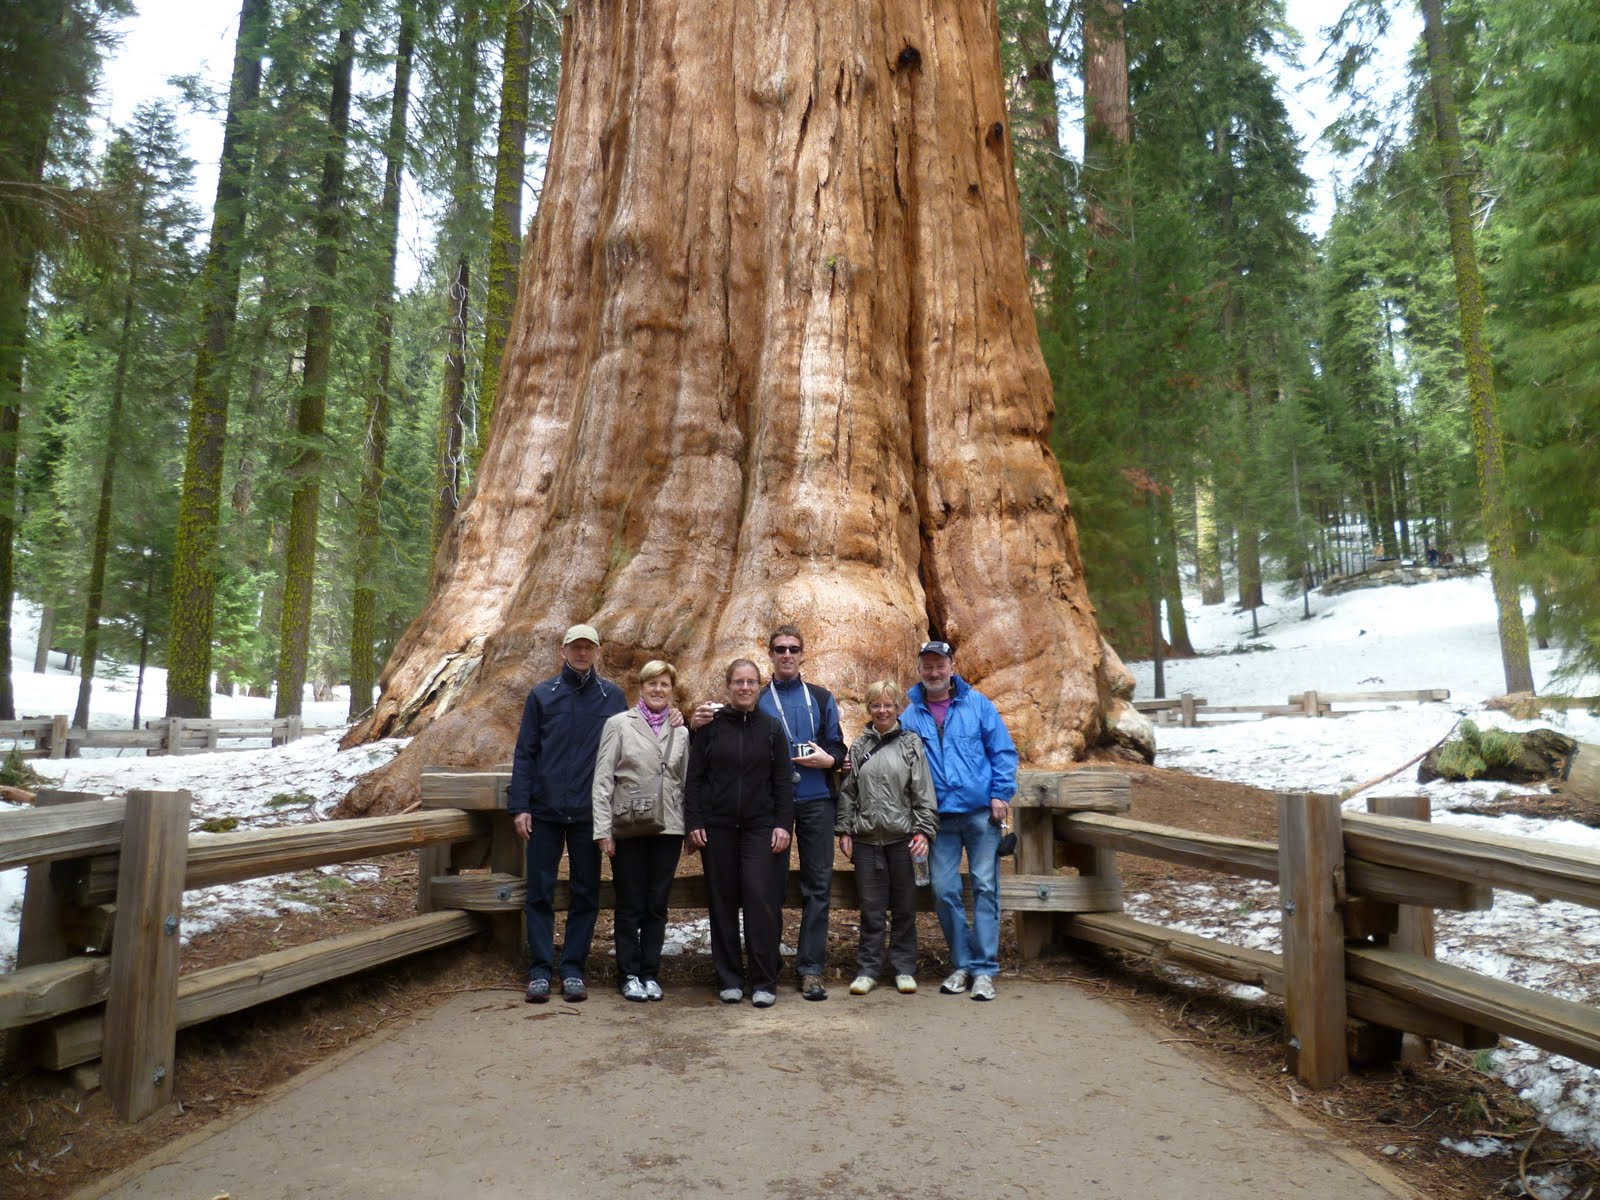 sequoia national park single parents 2-day yosemite, kings canyon and sequoia nation park tour from san francisco tour code: 552-6273.